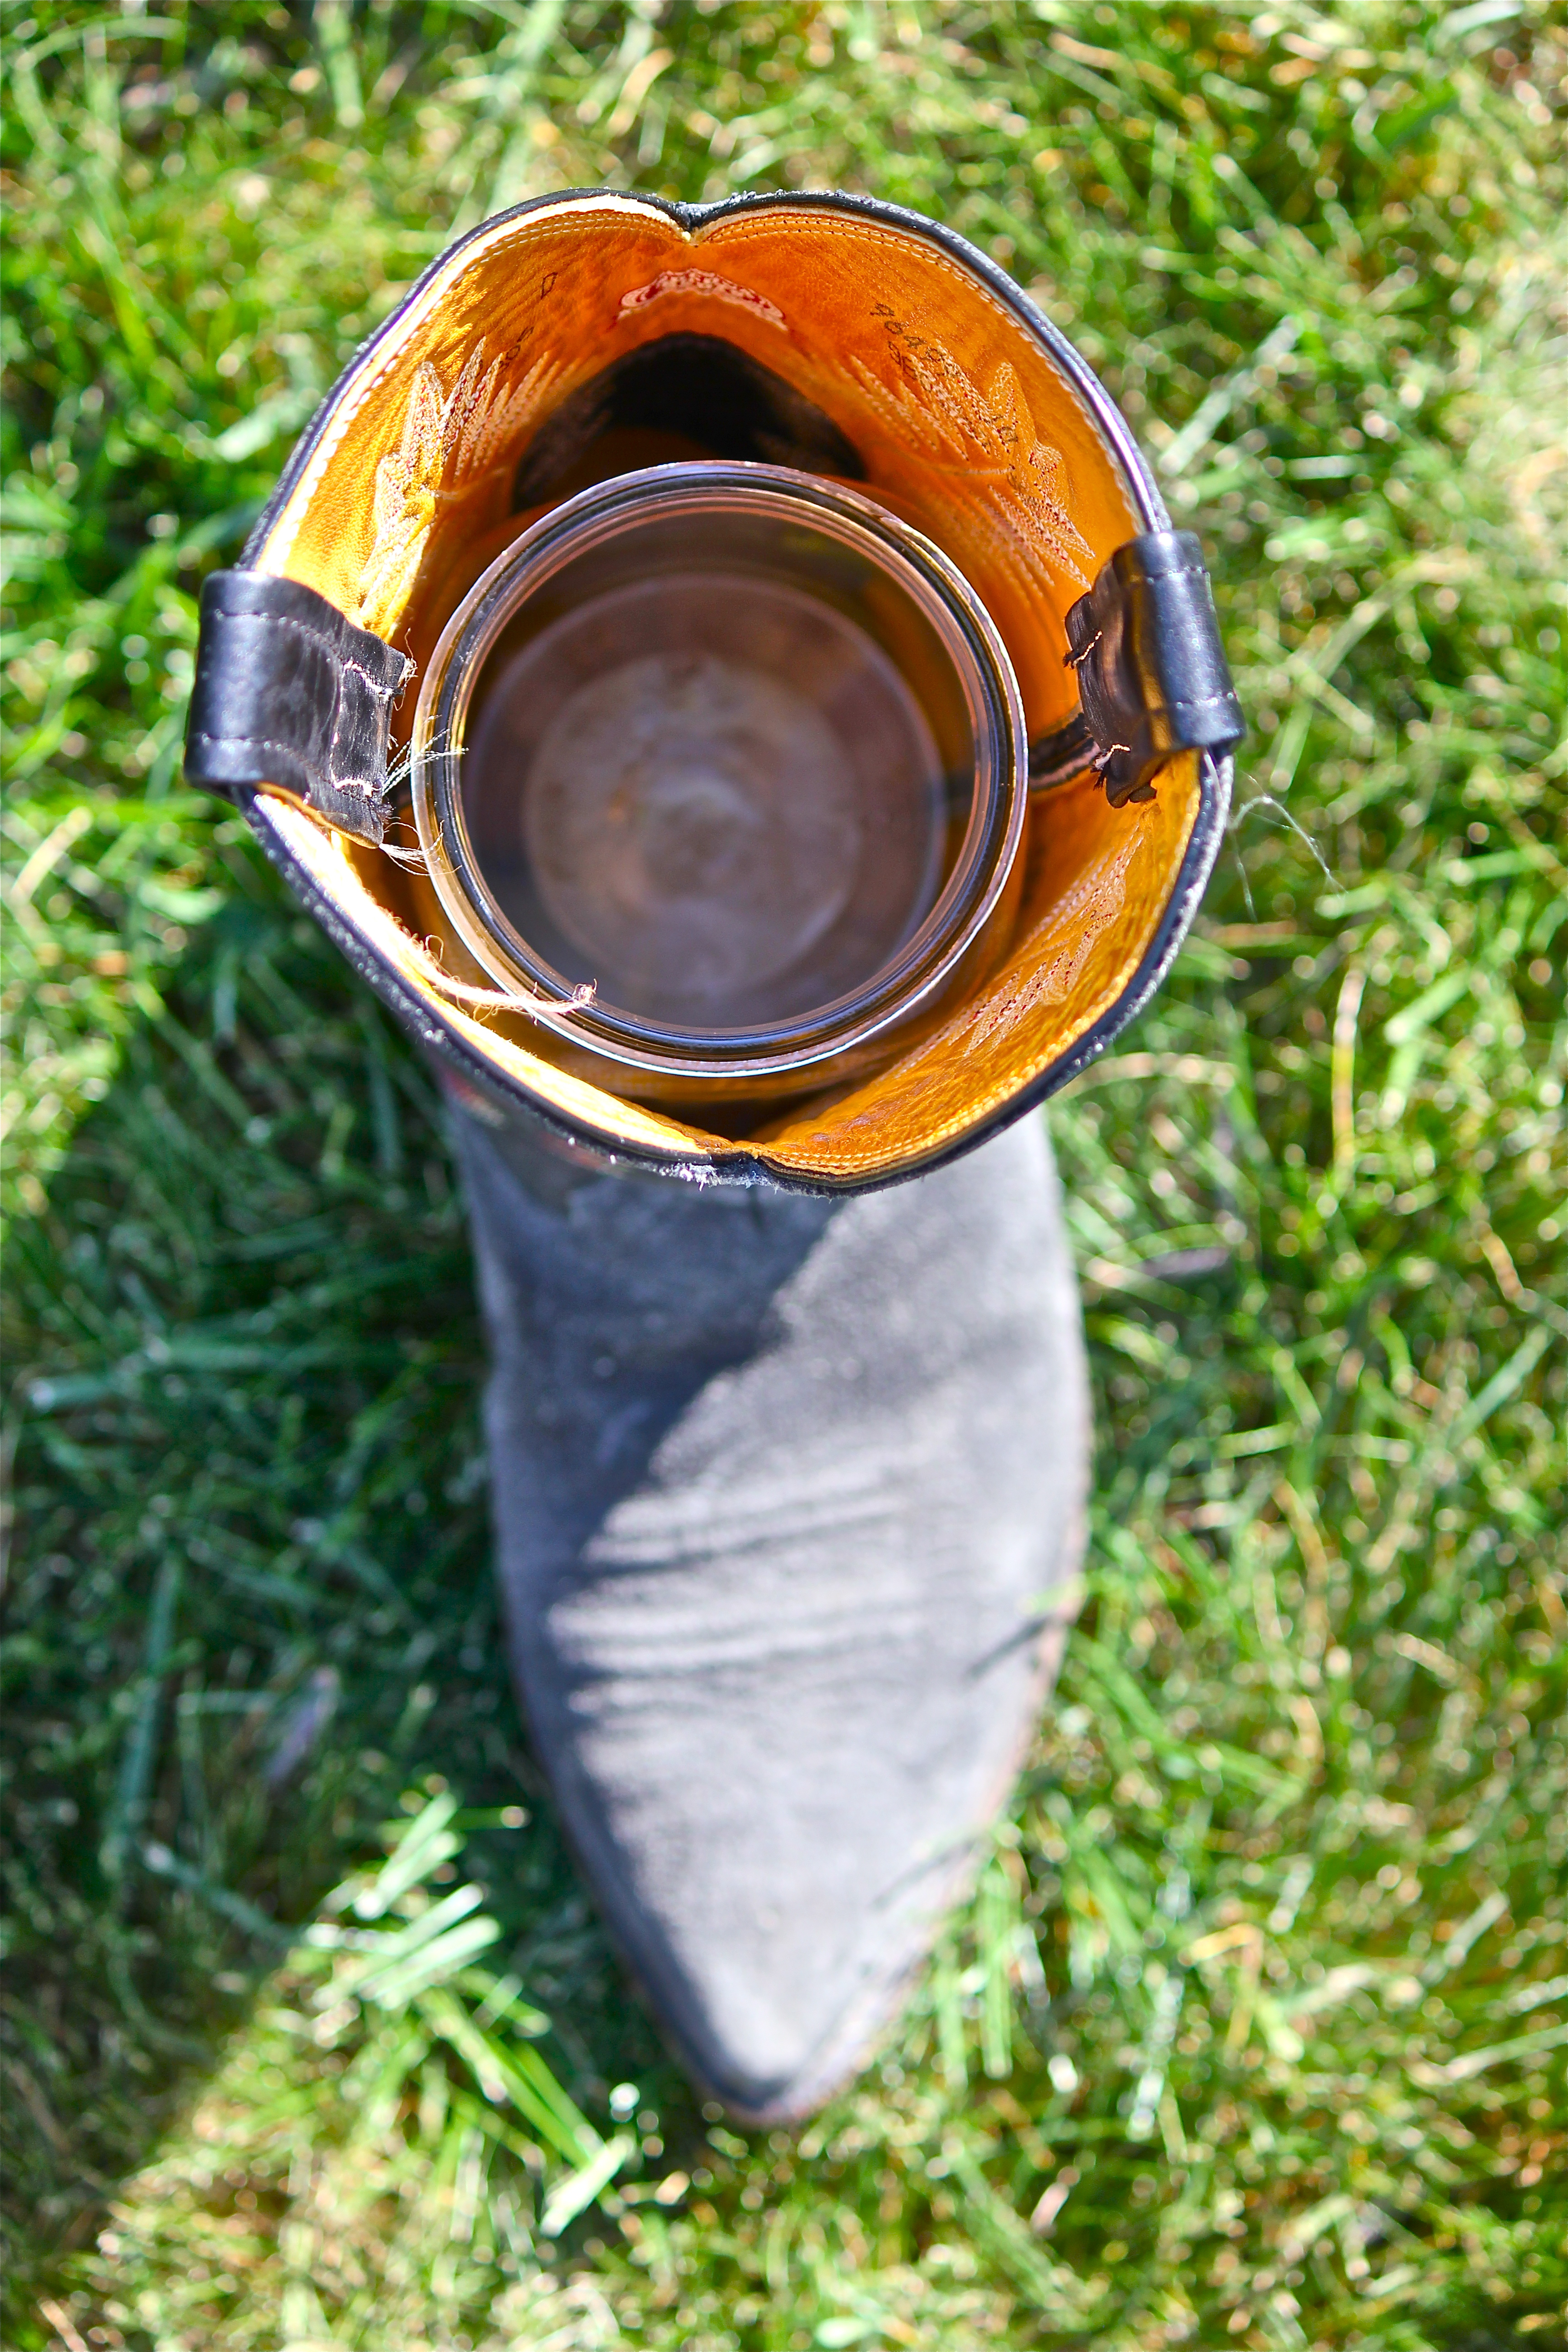 Cowboy boot wish i were a housewife glass jar or vase inside a cowboy boot image image floridaeventfo Images